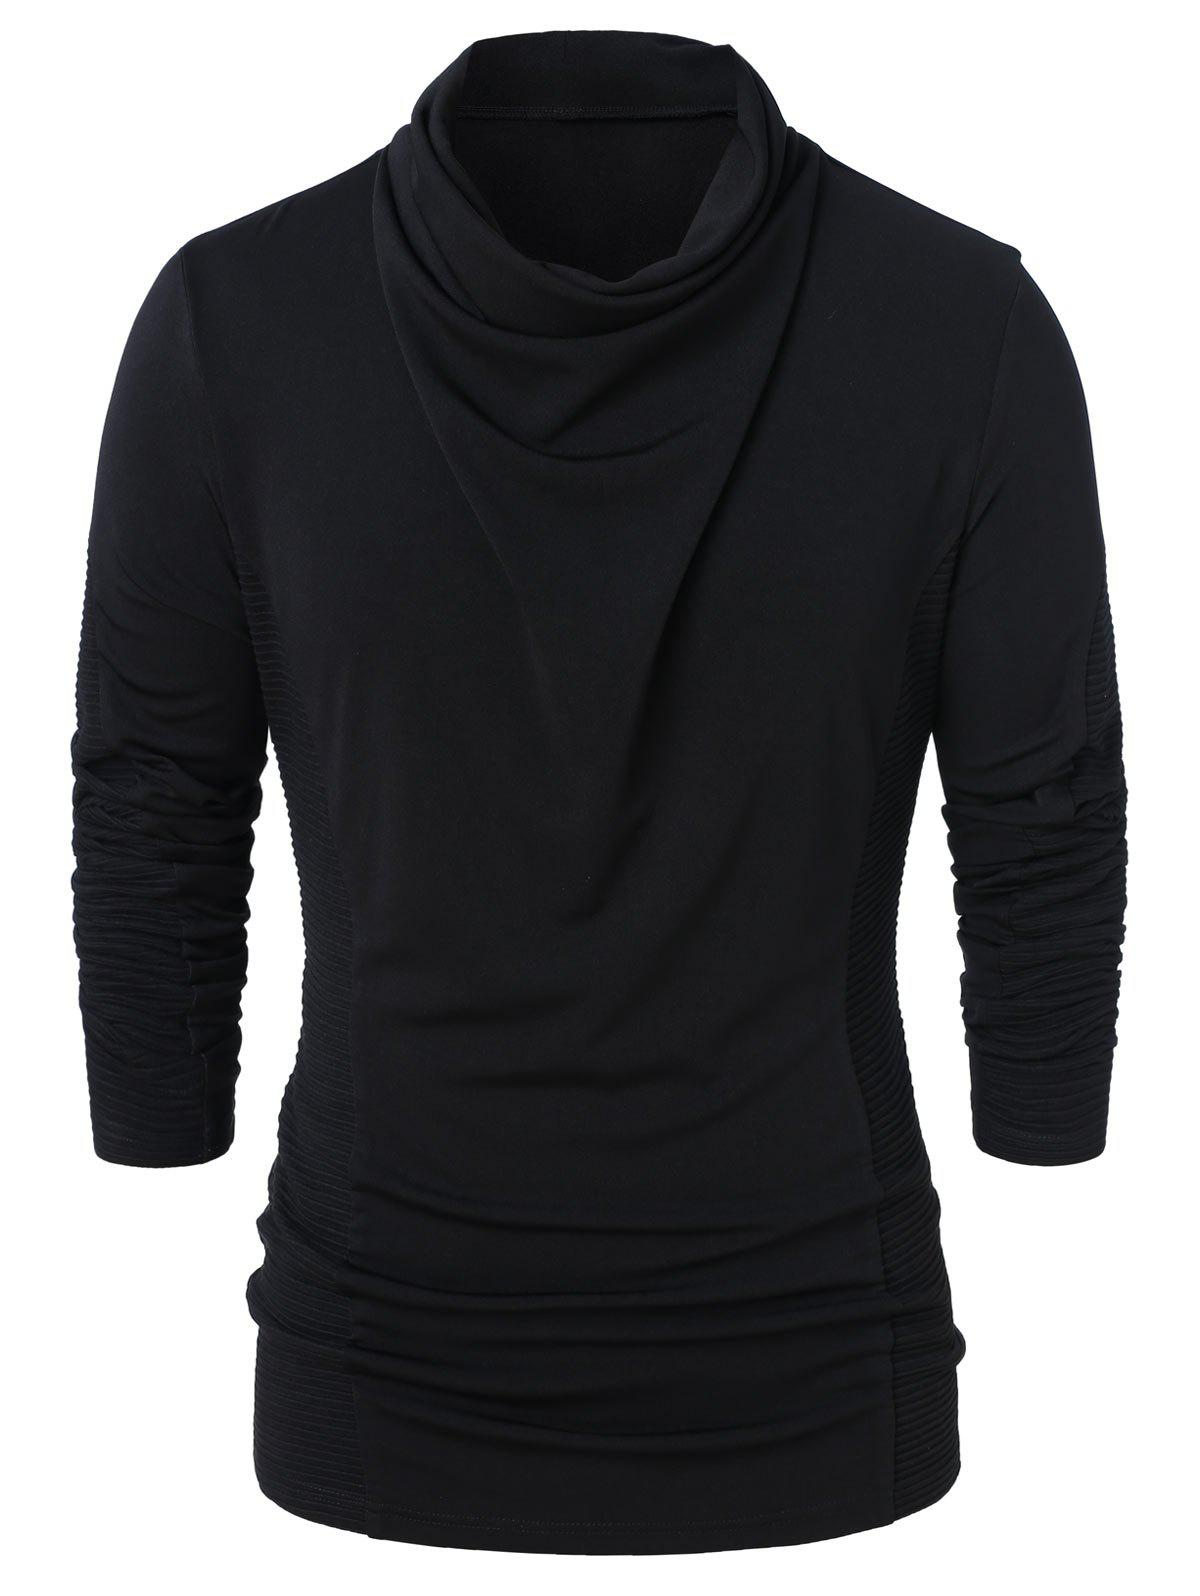 Cowl Neck Long Sleeve Solid Top - BLACK M